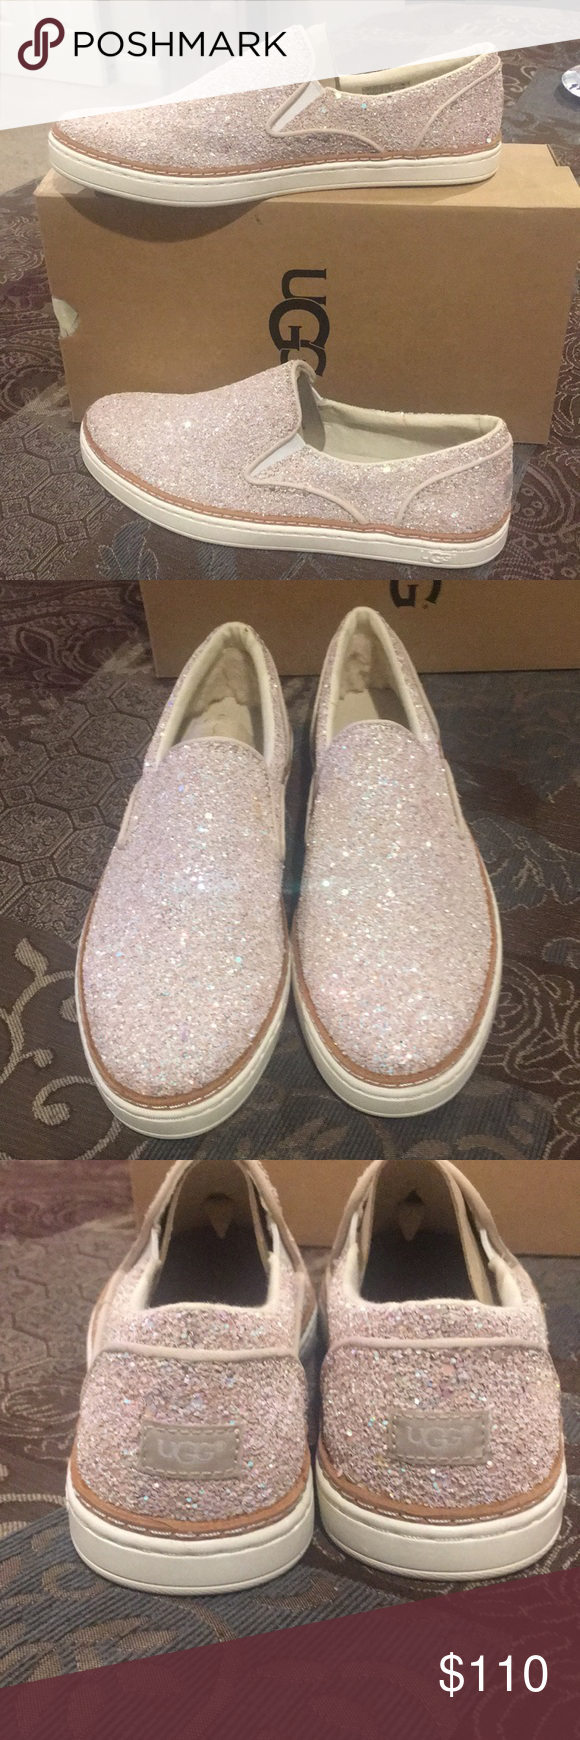 e4af9e96c83 UGG Adley Chunky Glitter Slip-On Sneakers $ FIRM AUTHENTIC UGG Adley ...